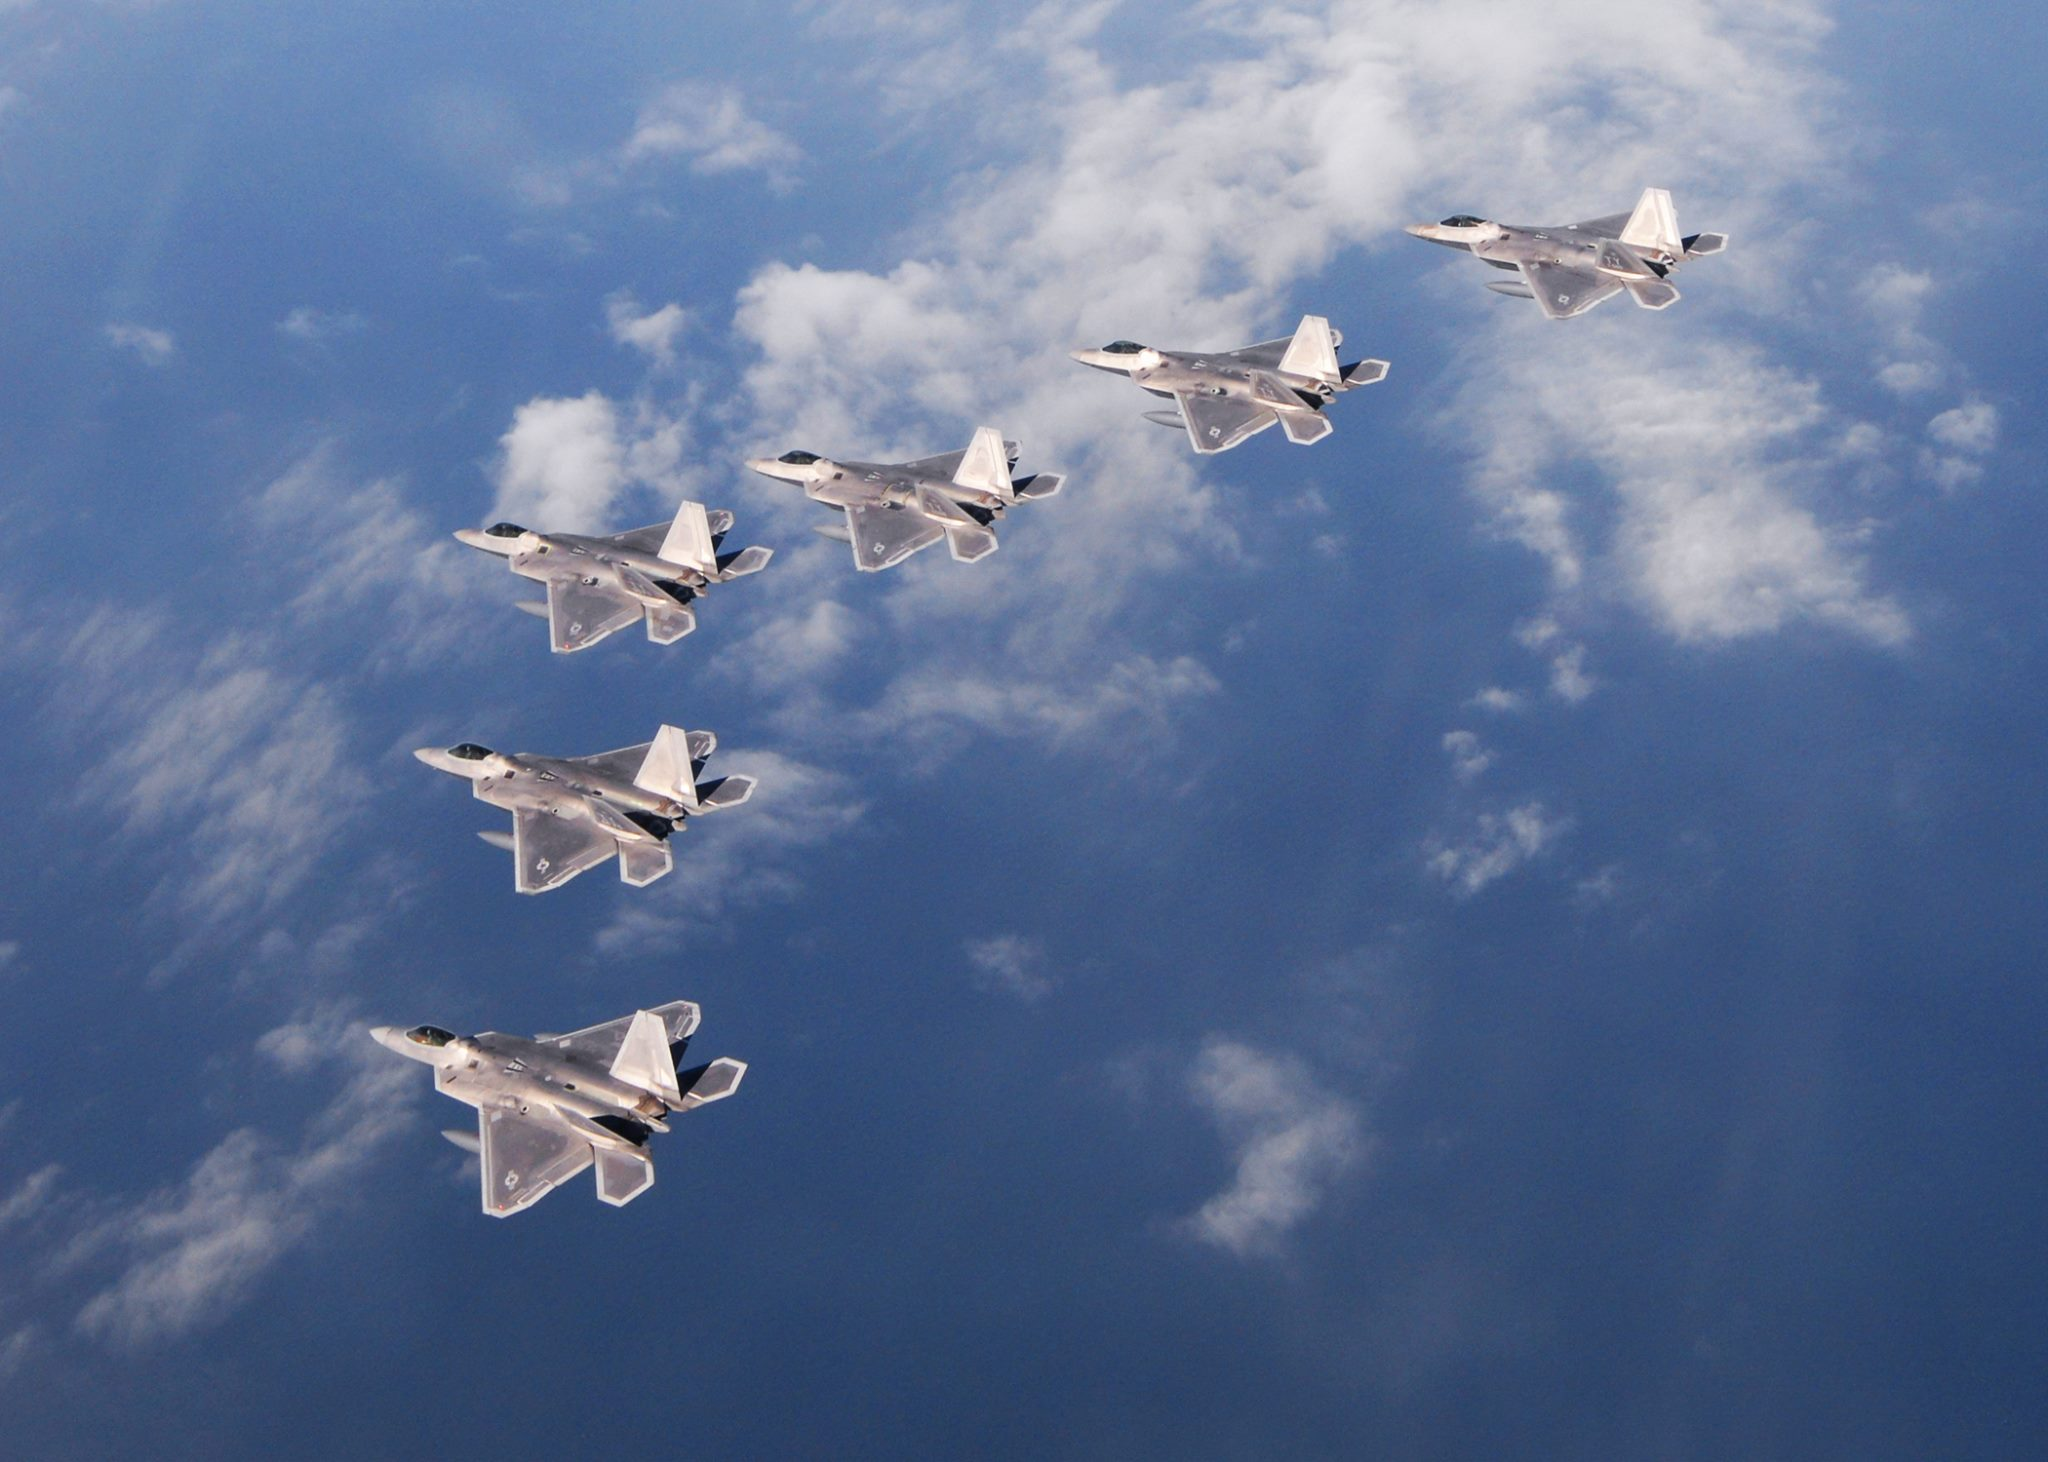 U.S. Air Force F-22A Raptor fighters training at Tyndall AFB